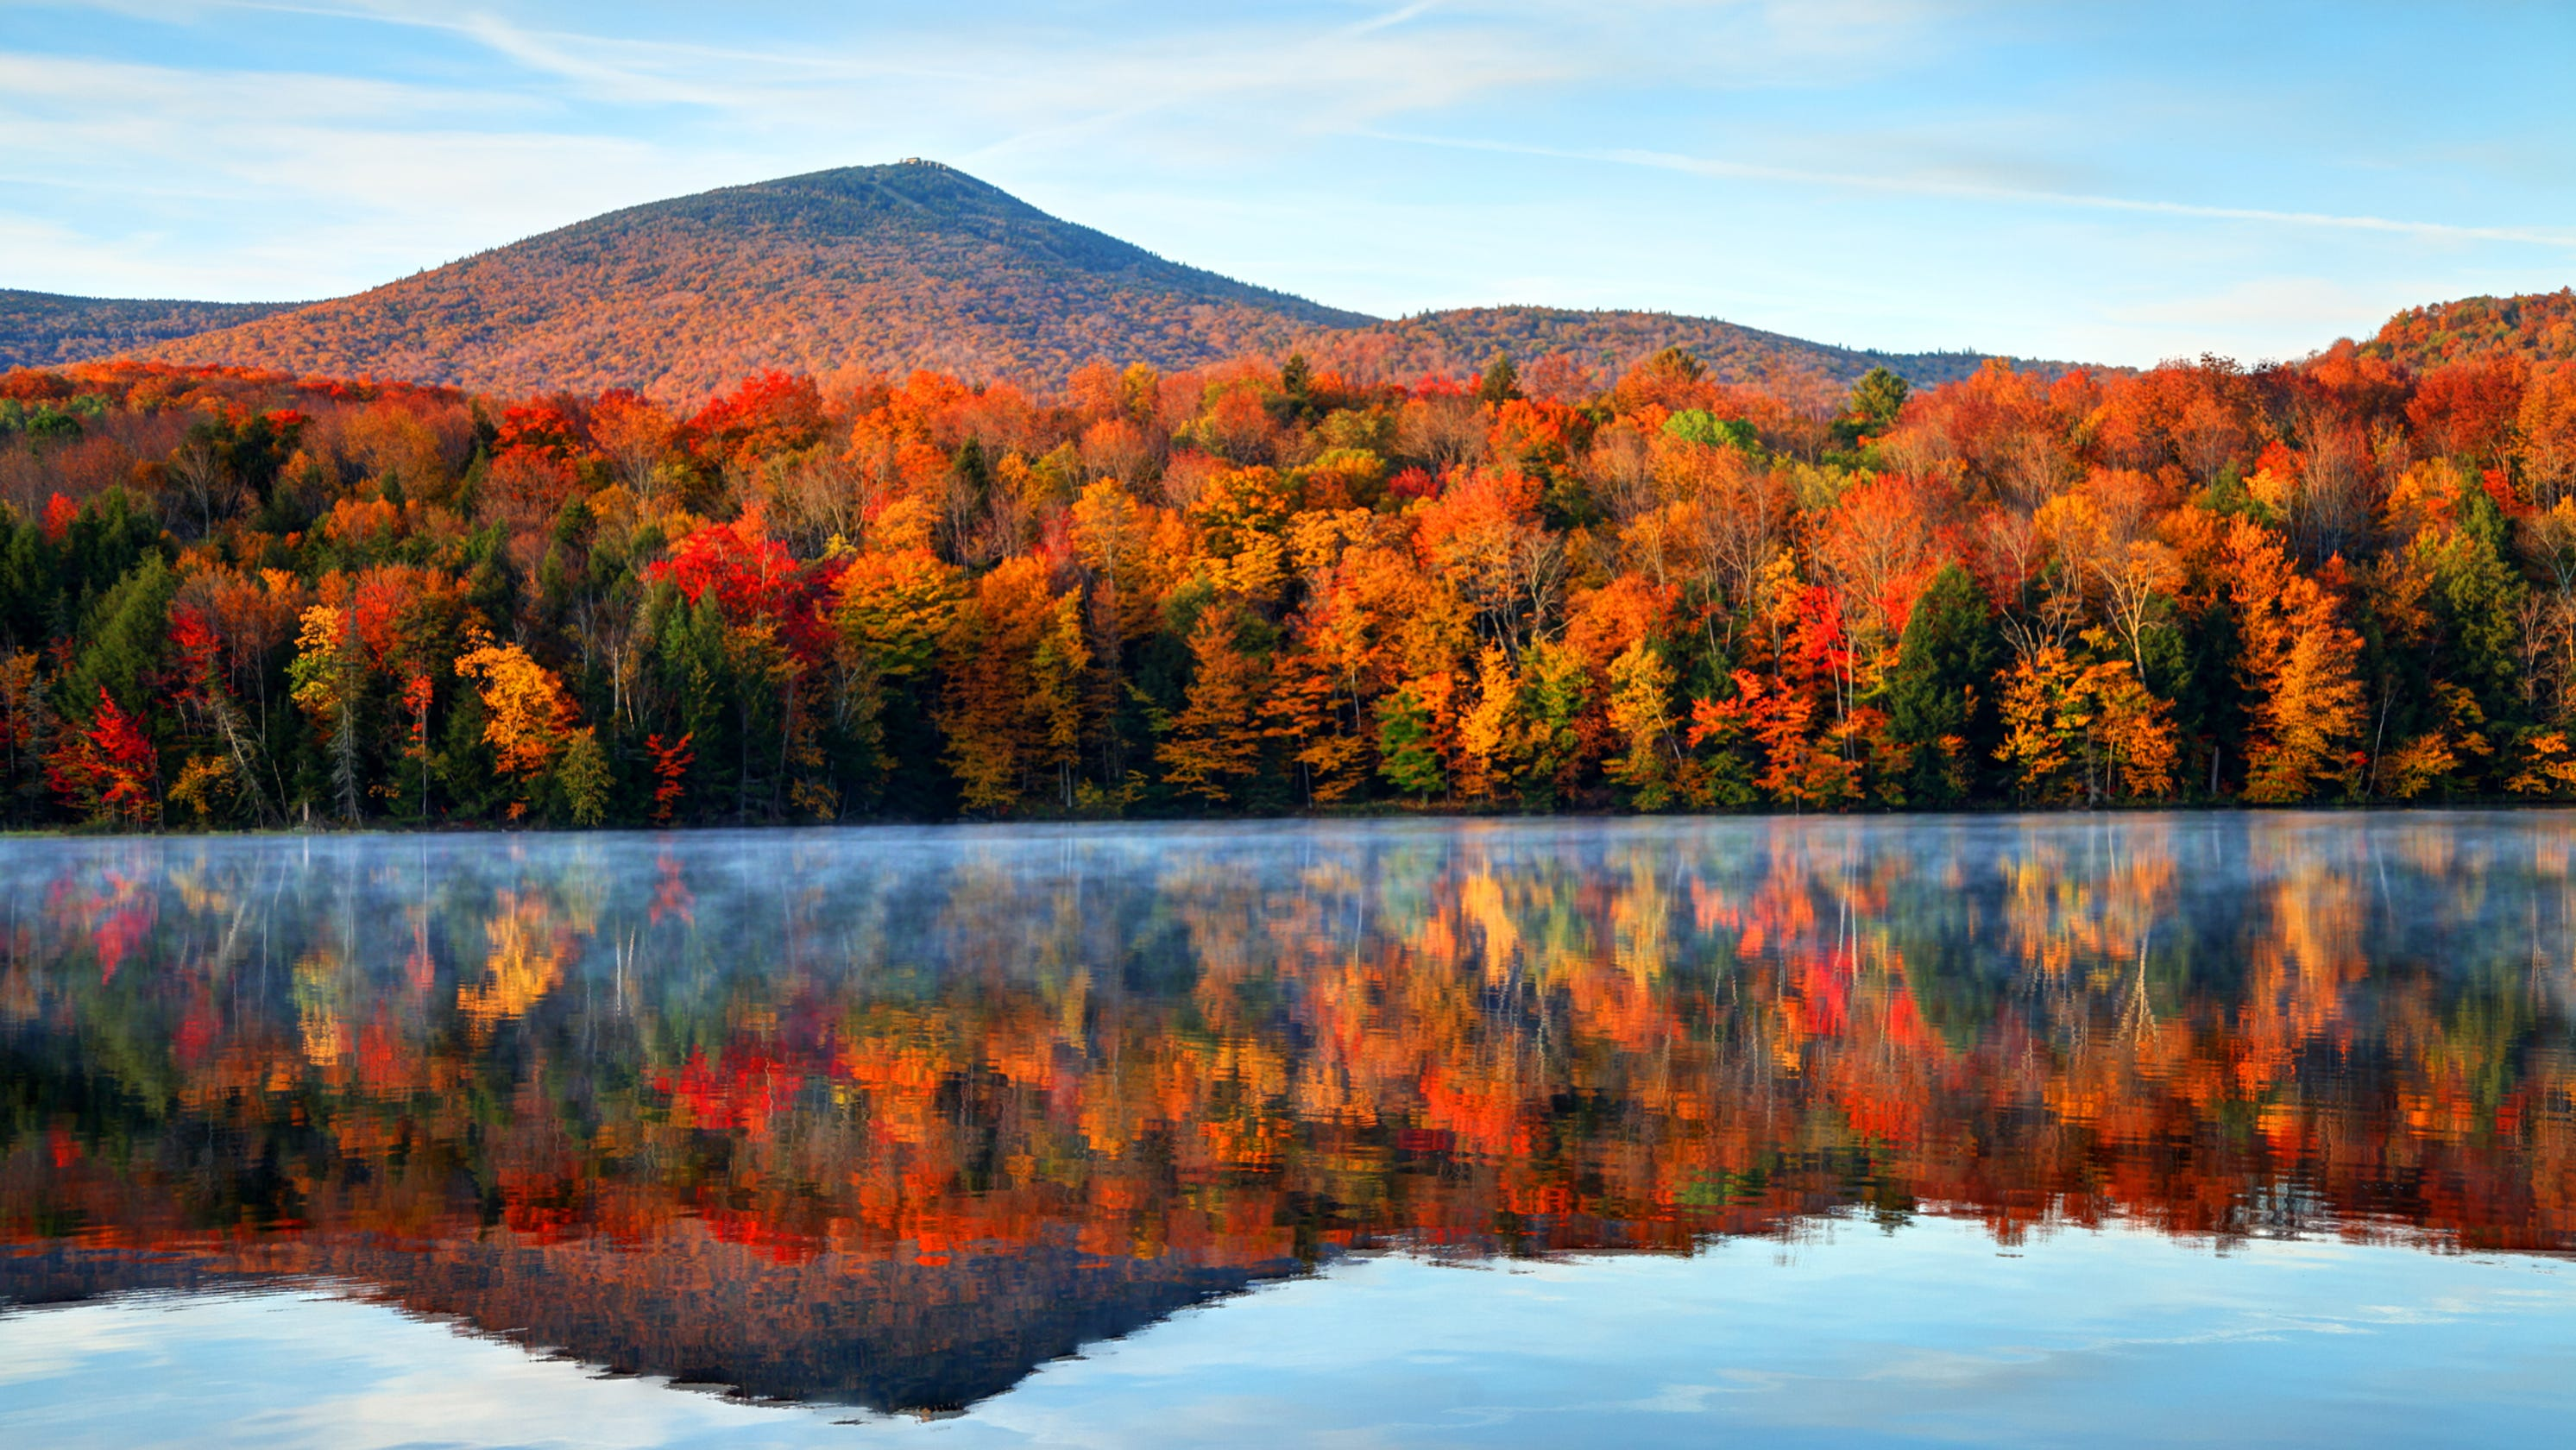 Autumnal equinox: Monday is the first day of fall